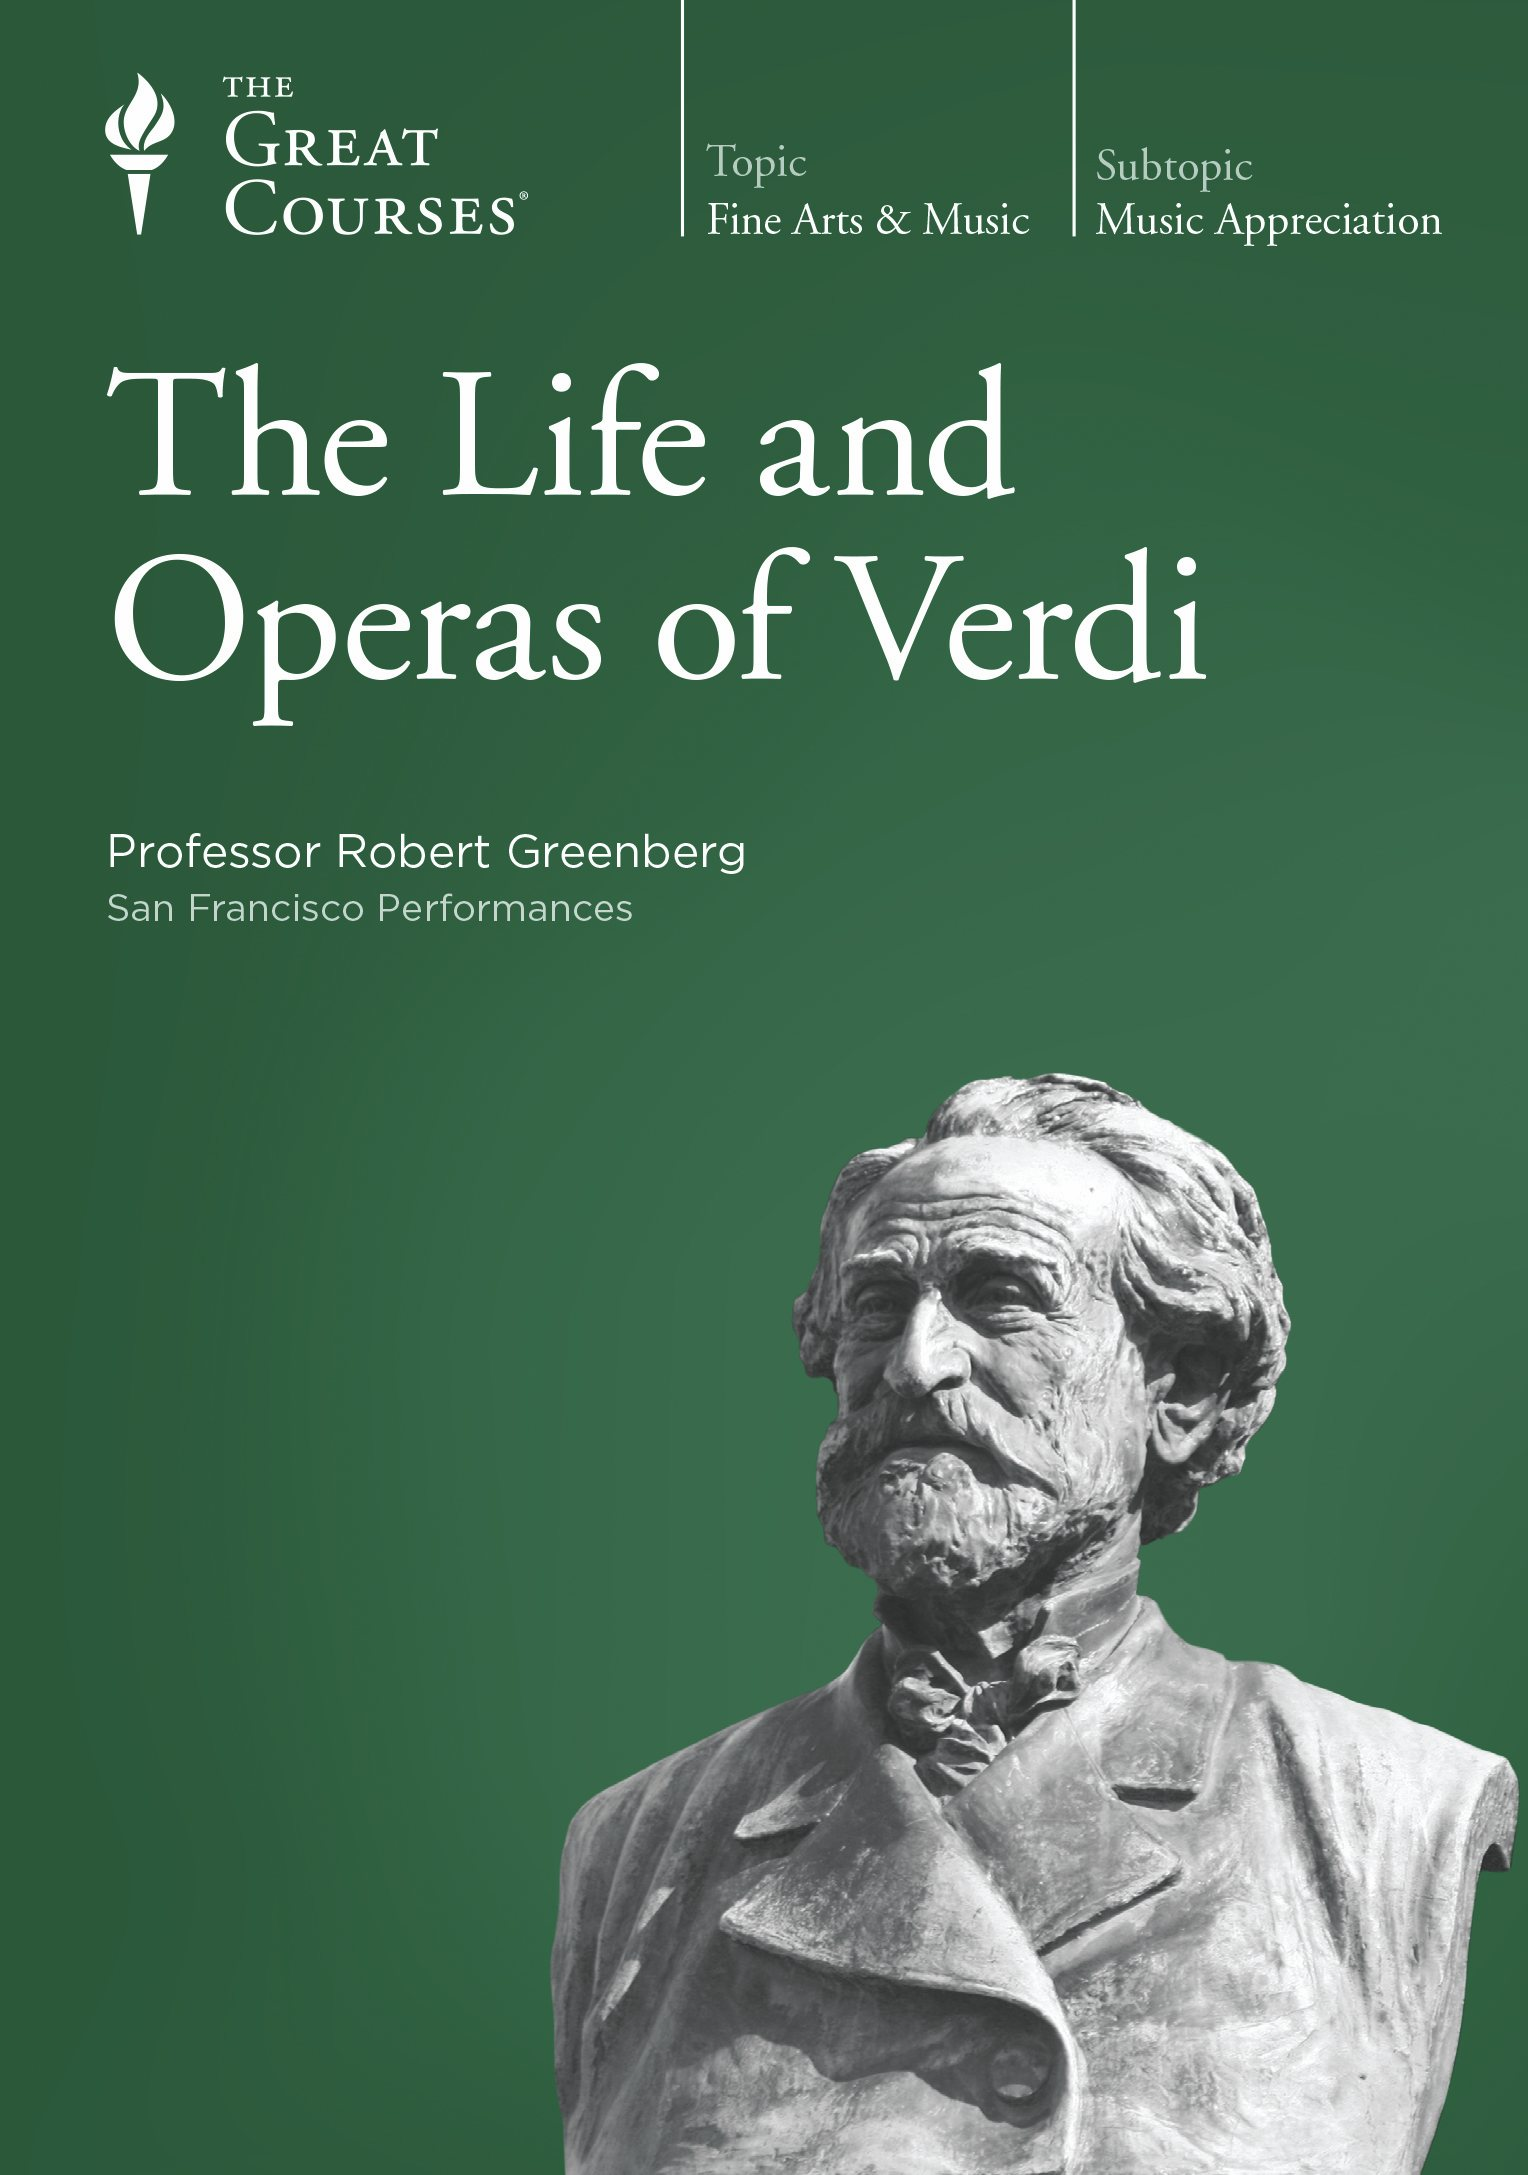 The Life and Operas of Verdi